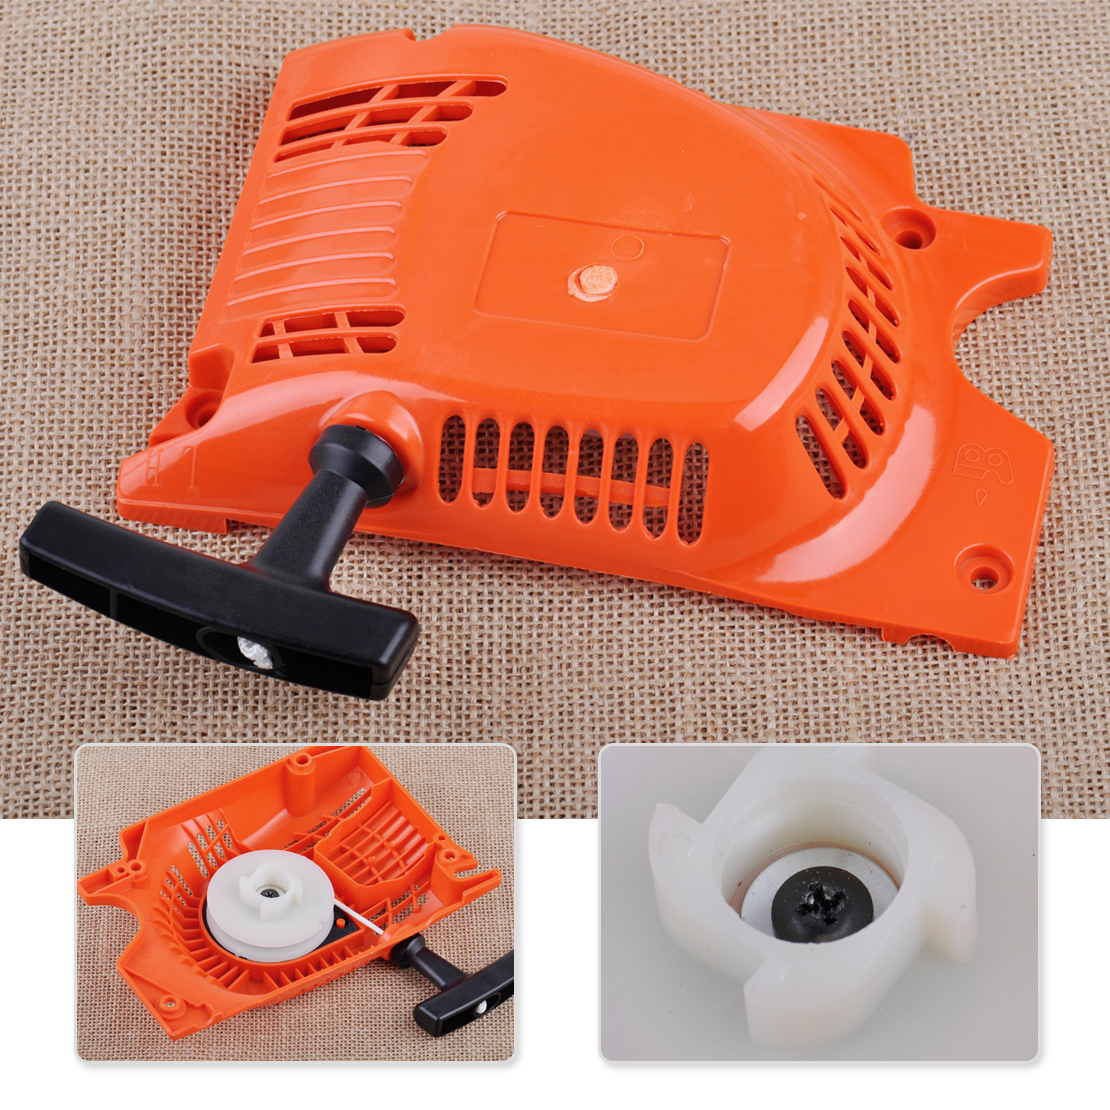 LETAOSK New Generator Recoil Pull Starter Chainsaw Spares fit For Chinese Chainsaw 4500 5200 5800 45cc 52cc 58cc chainsaw easy starter with two spring recoil starter pulley fits 45cc 52cc 58cc chainsaw replacement parts